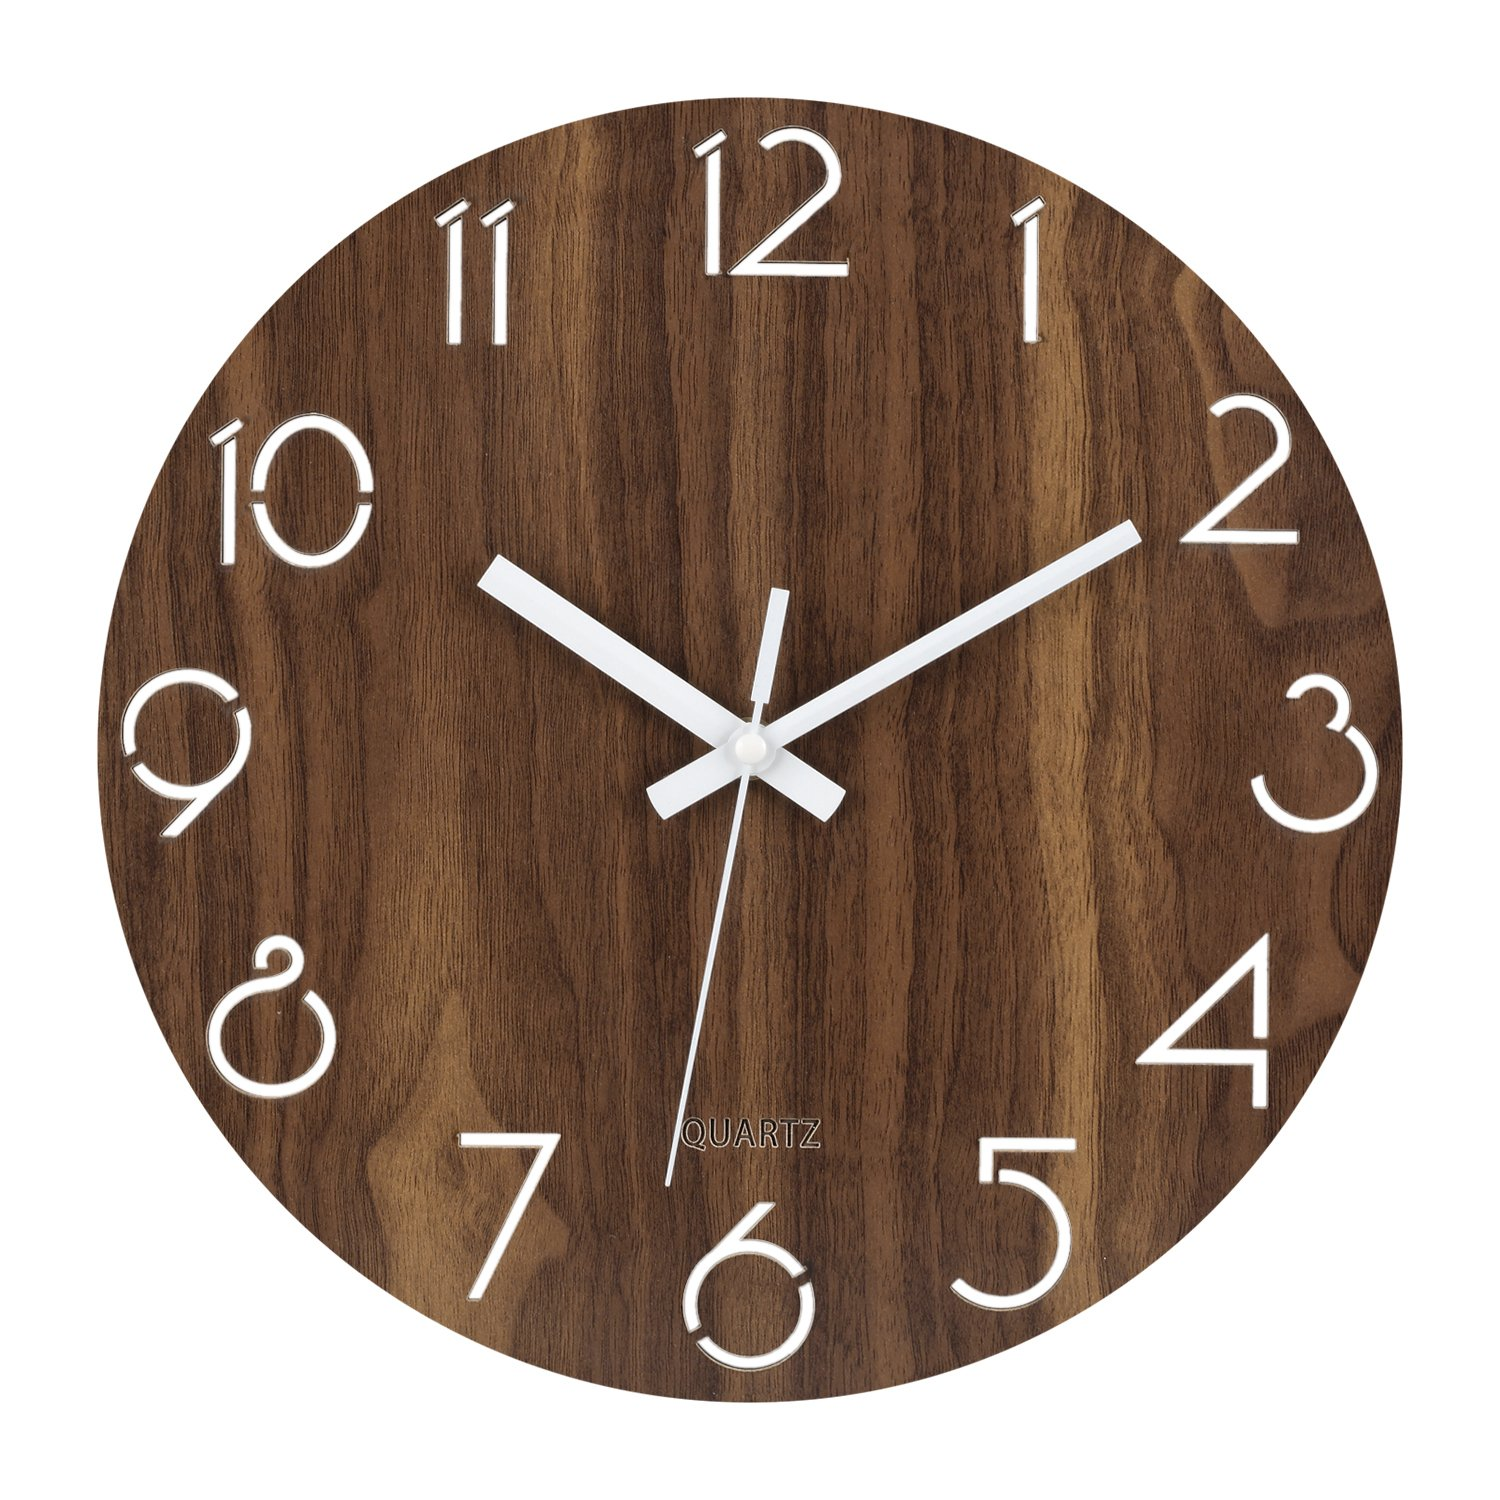 Ryuan 12 inch simplicity Wooden Wall Clock, Silent Non Ticking Quality Quartz Battery Operated Numeral Design Rustic Country Tuscan Style Decorative Round Clock (Dark Brown)